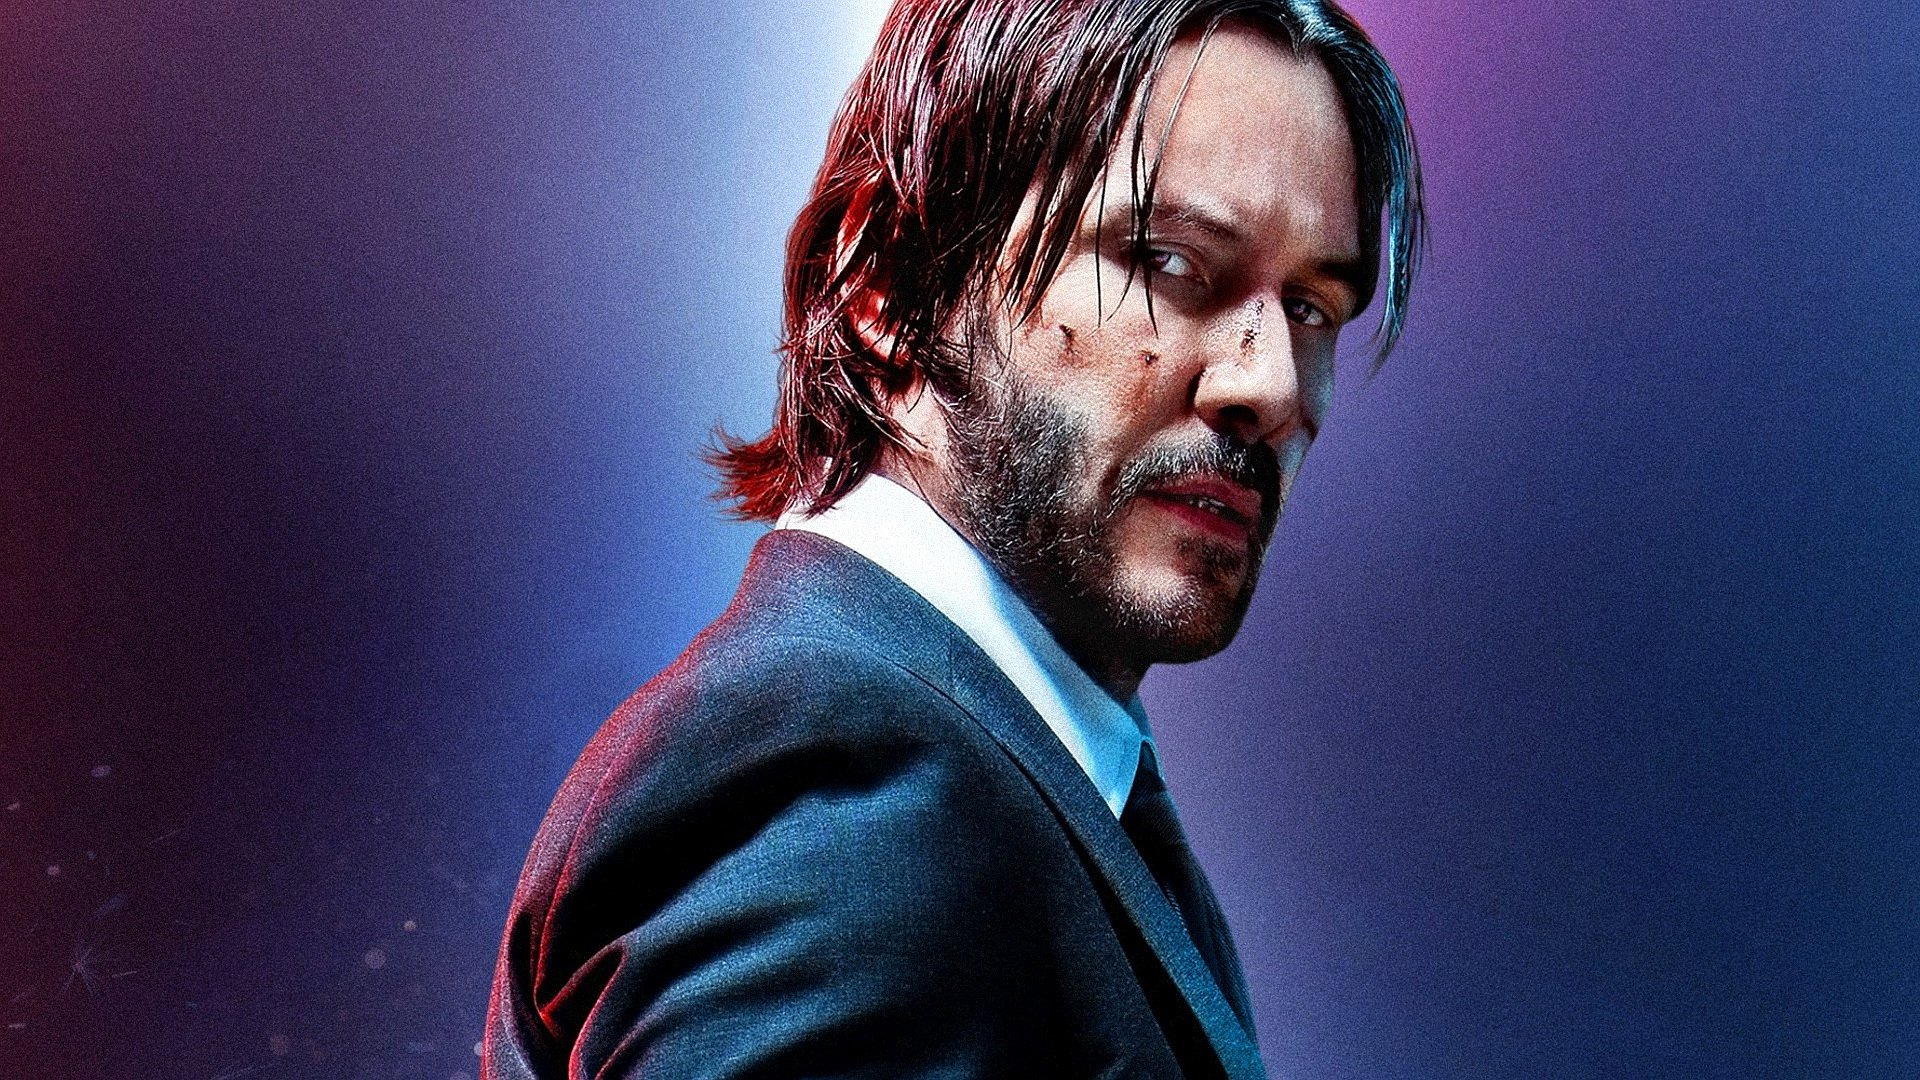 Iphone 7 Hd Wallpapers 1080p John Wick Wallpapers High Quality Download Free